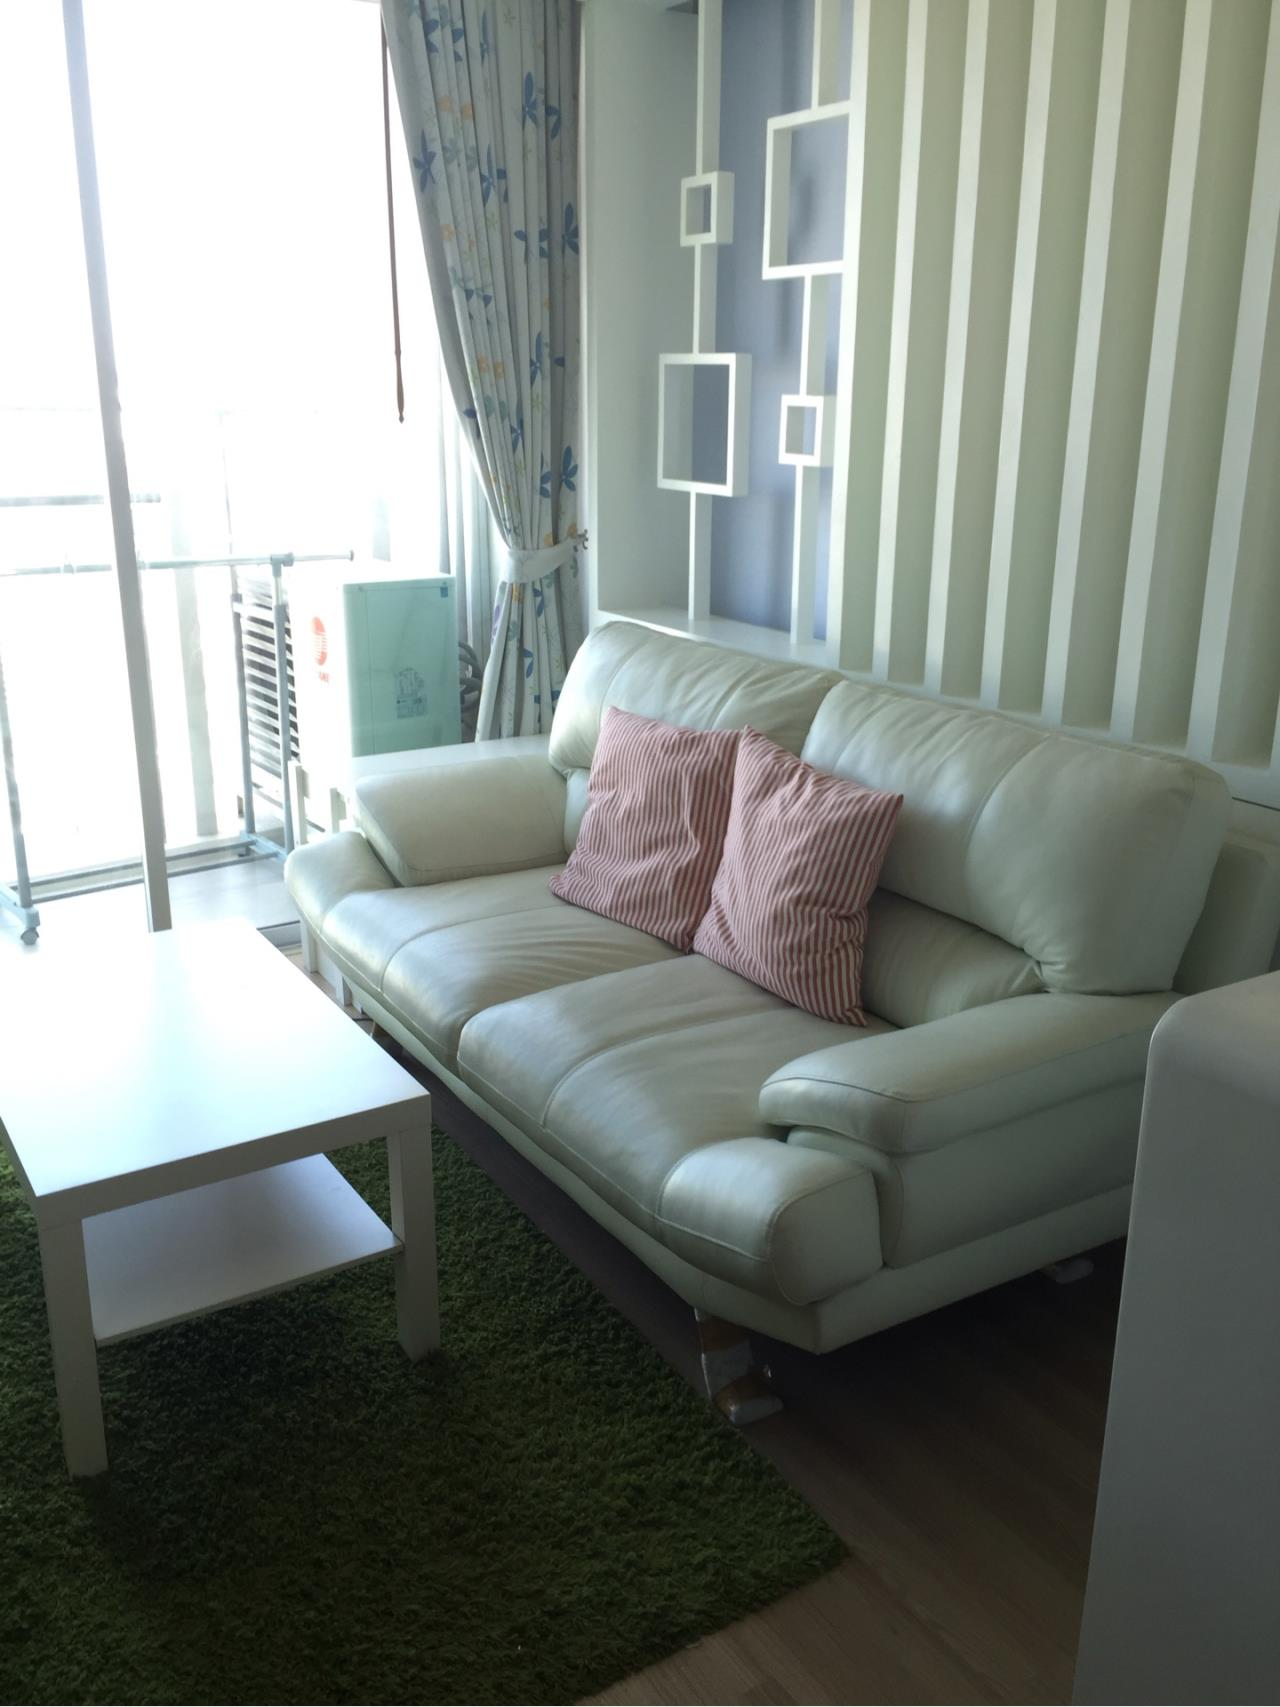 Quality Life Property Agency's R E N T ! ! [ SKY WALK ] 2 BR 60 SQ. M. NICE DECORATION 4